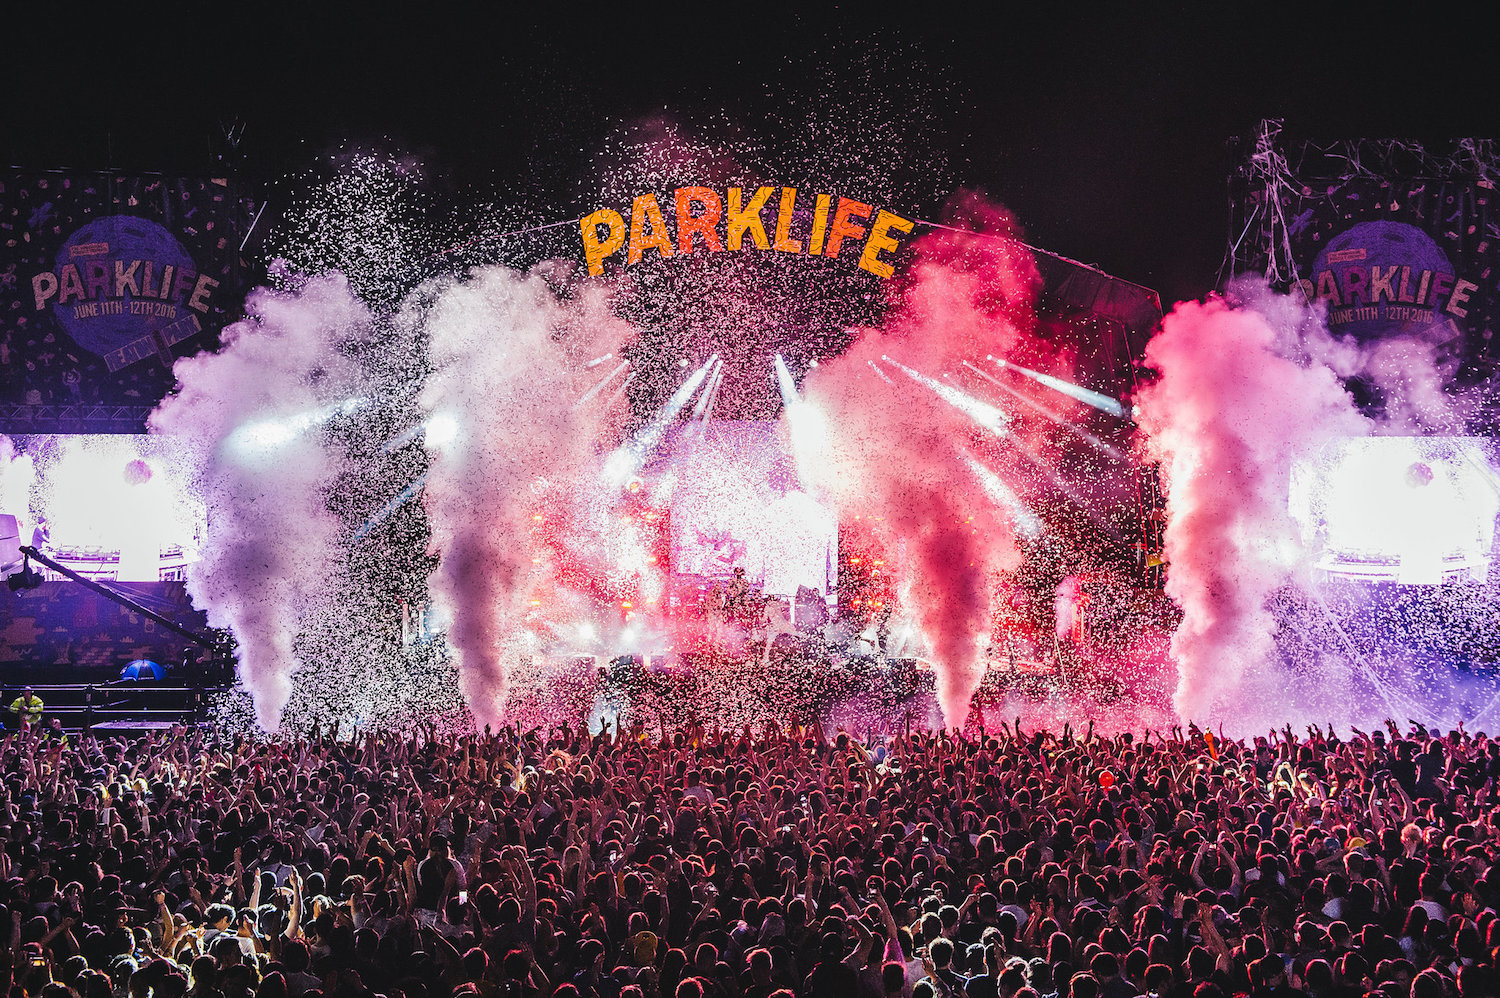 Parklife is the latest festival to drop a killer 2018 line-up